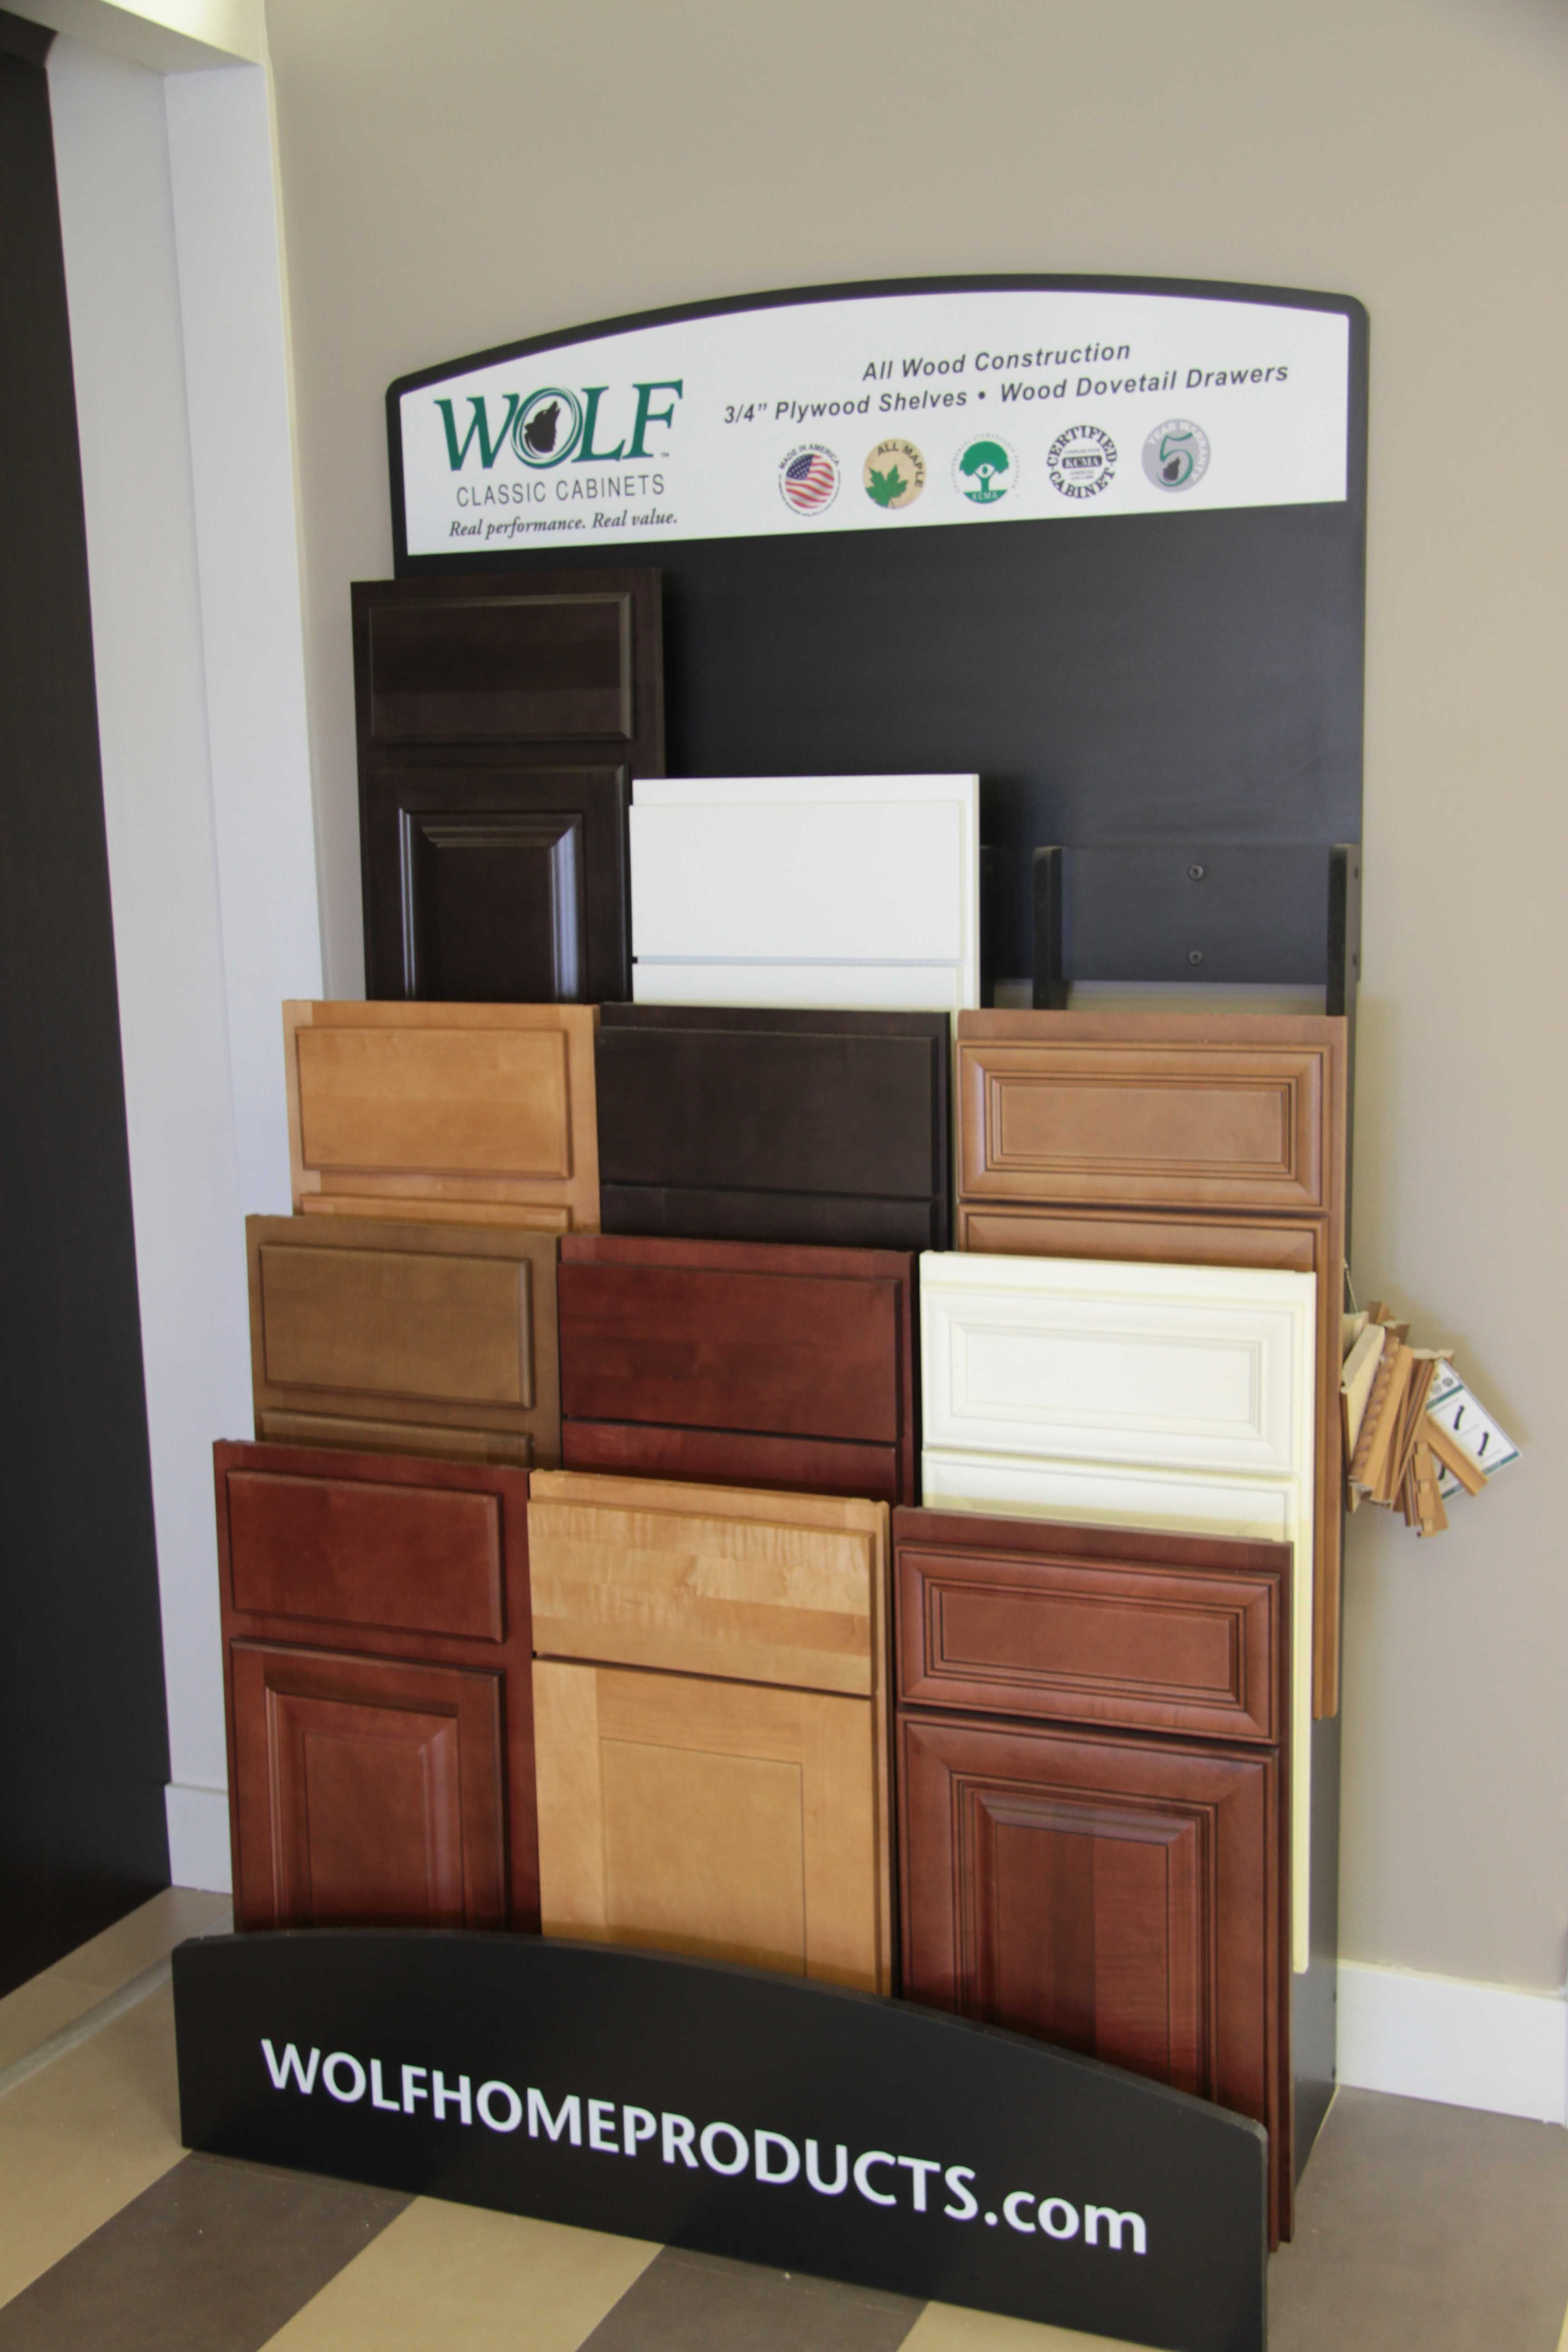 wolf classic cabinets - display | wolf classic cabinets